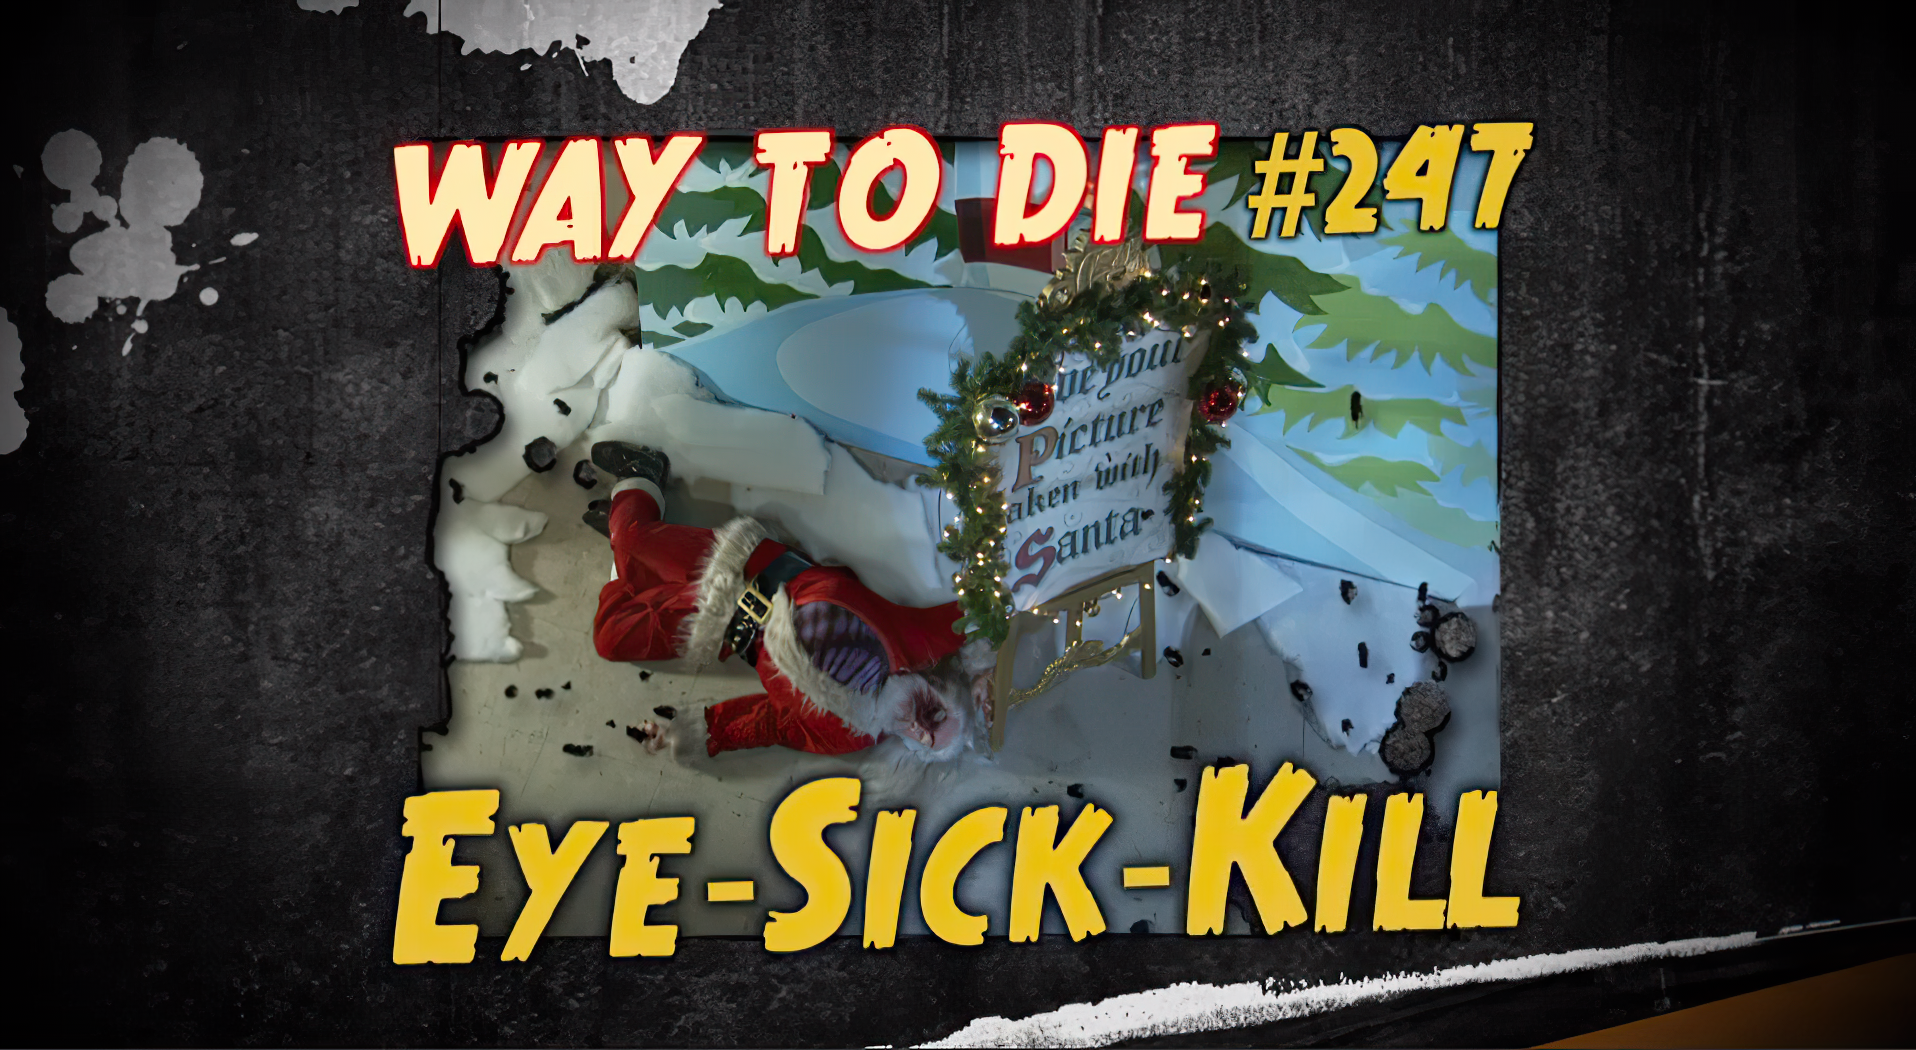 Eye-Sick-Kill